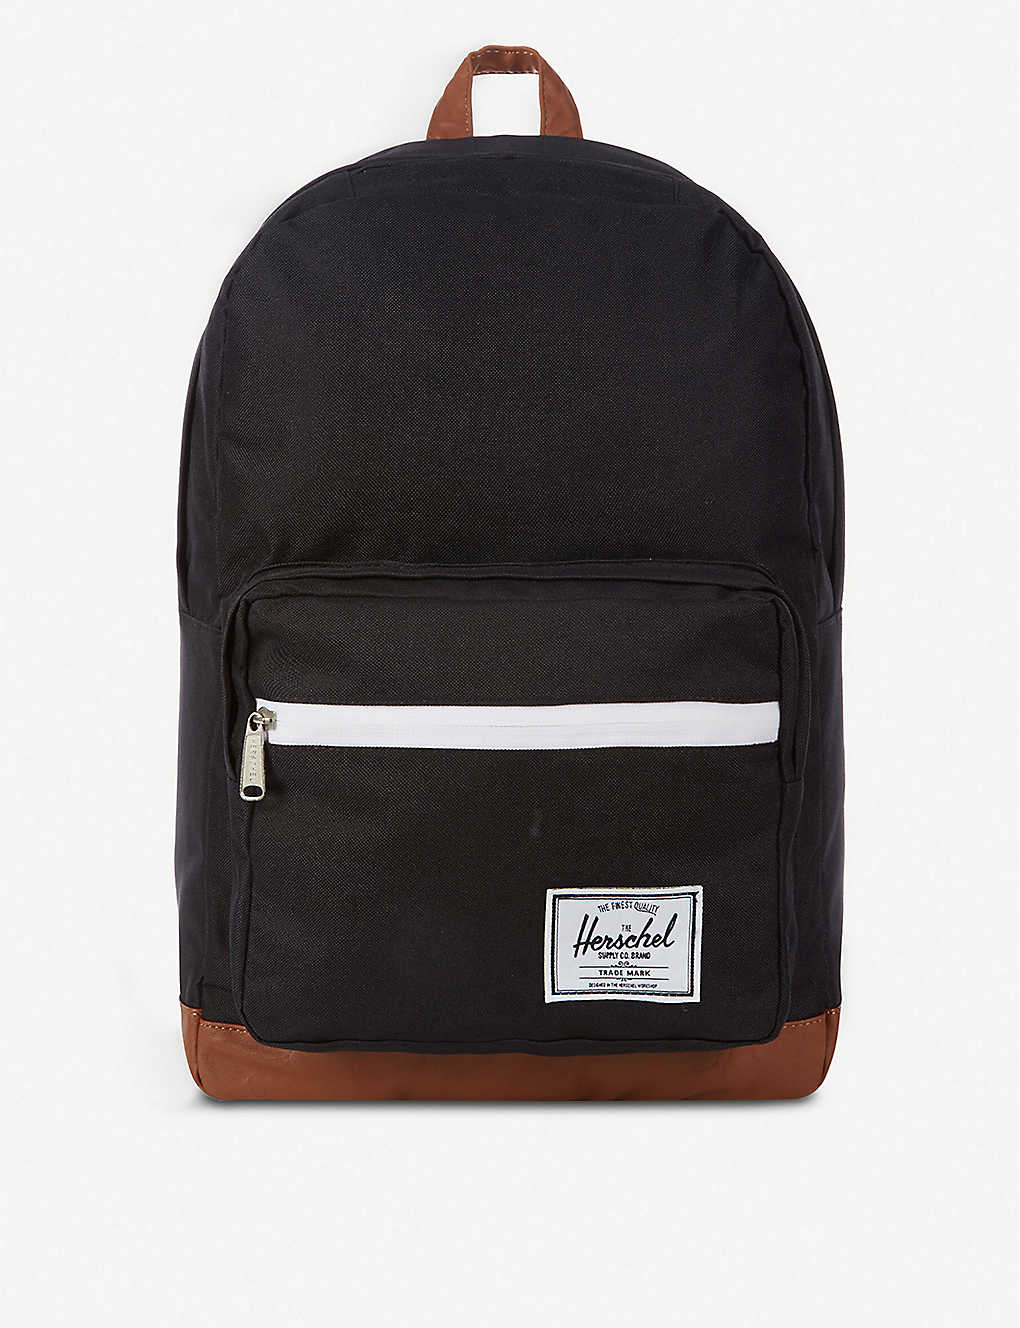 5e6ebdcdac7 HERSCHEL SUPPLY CO - Pop quiz backpack